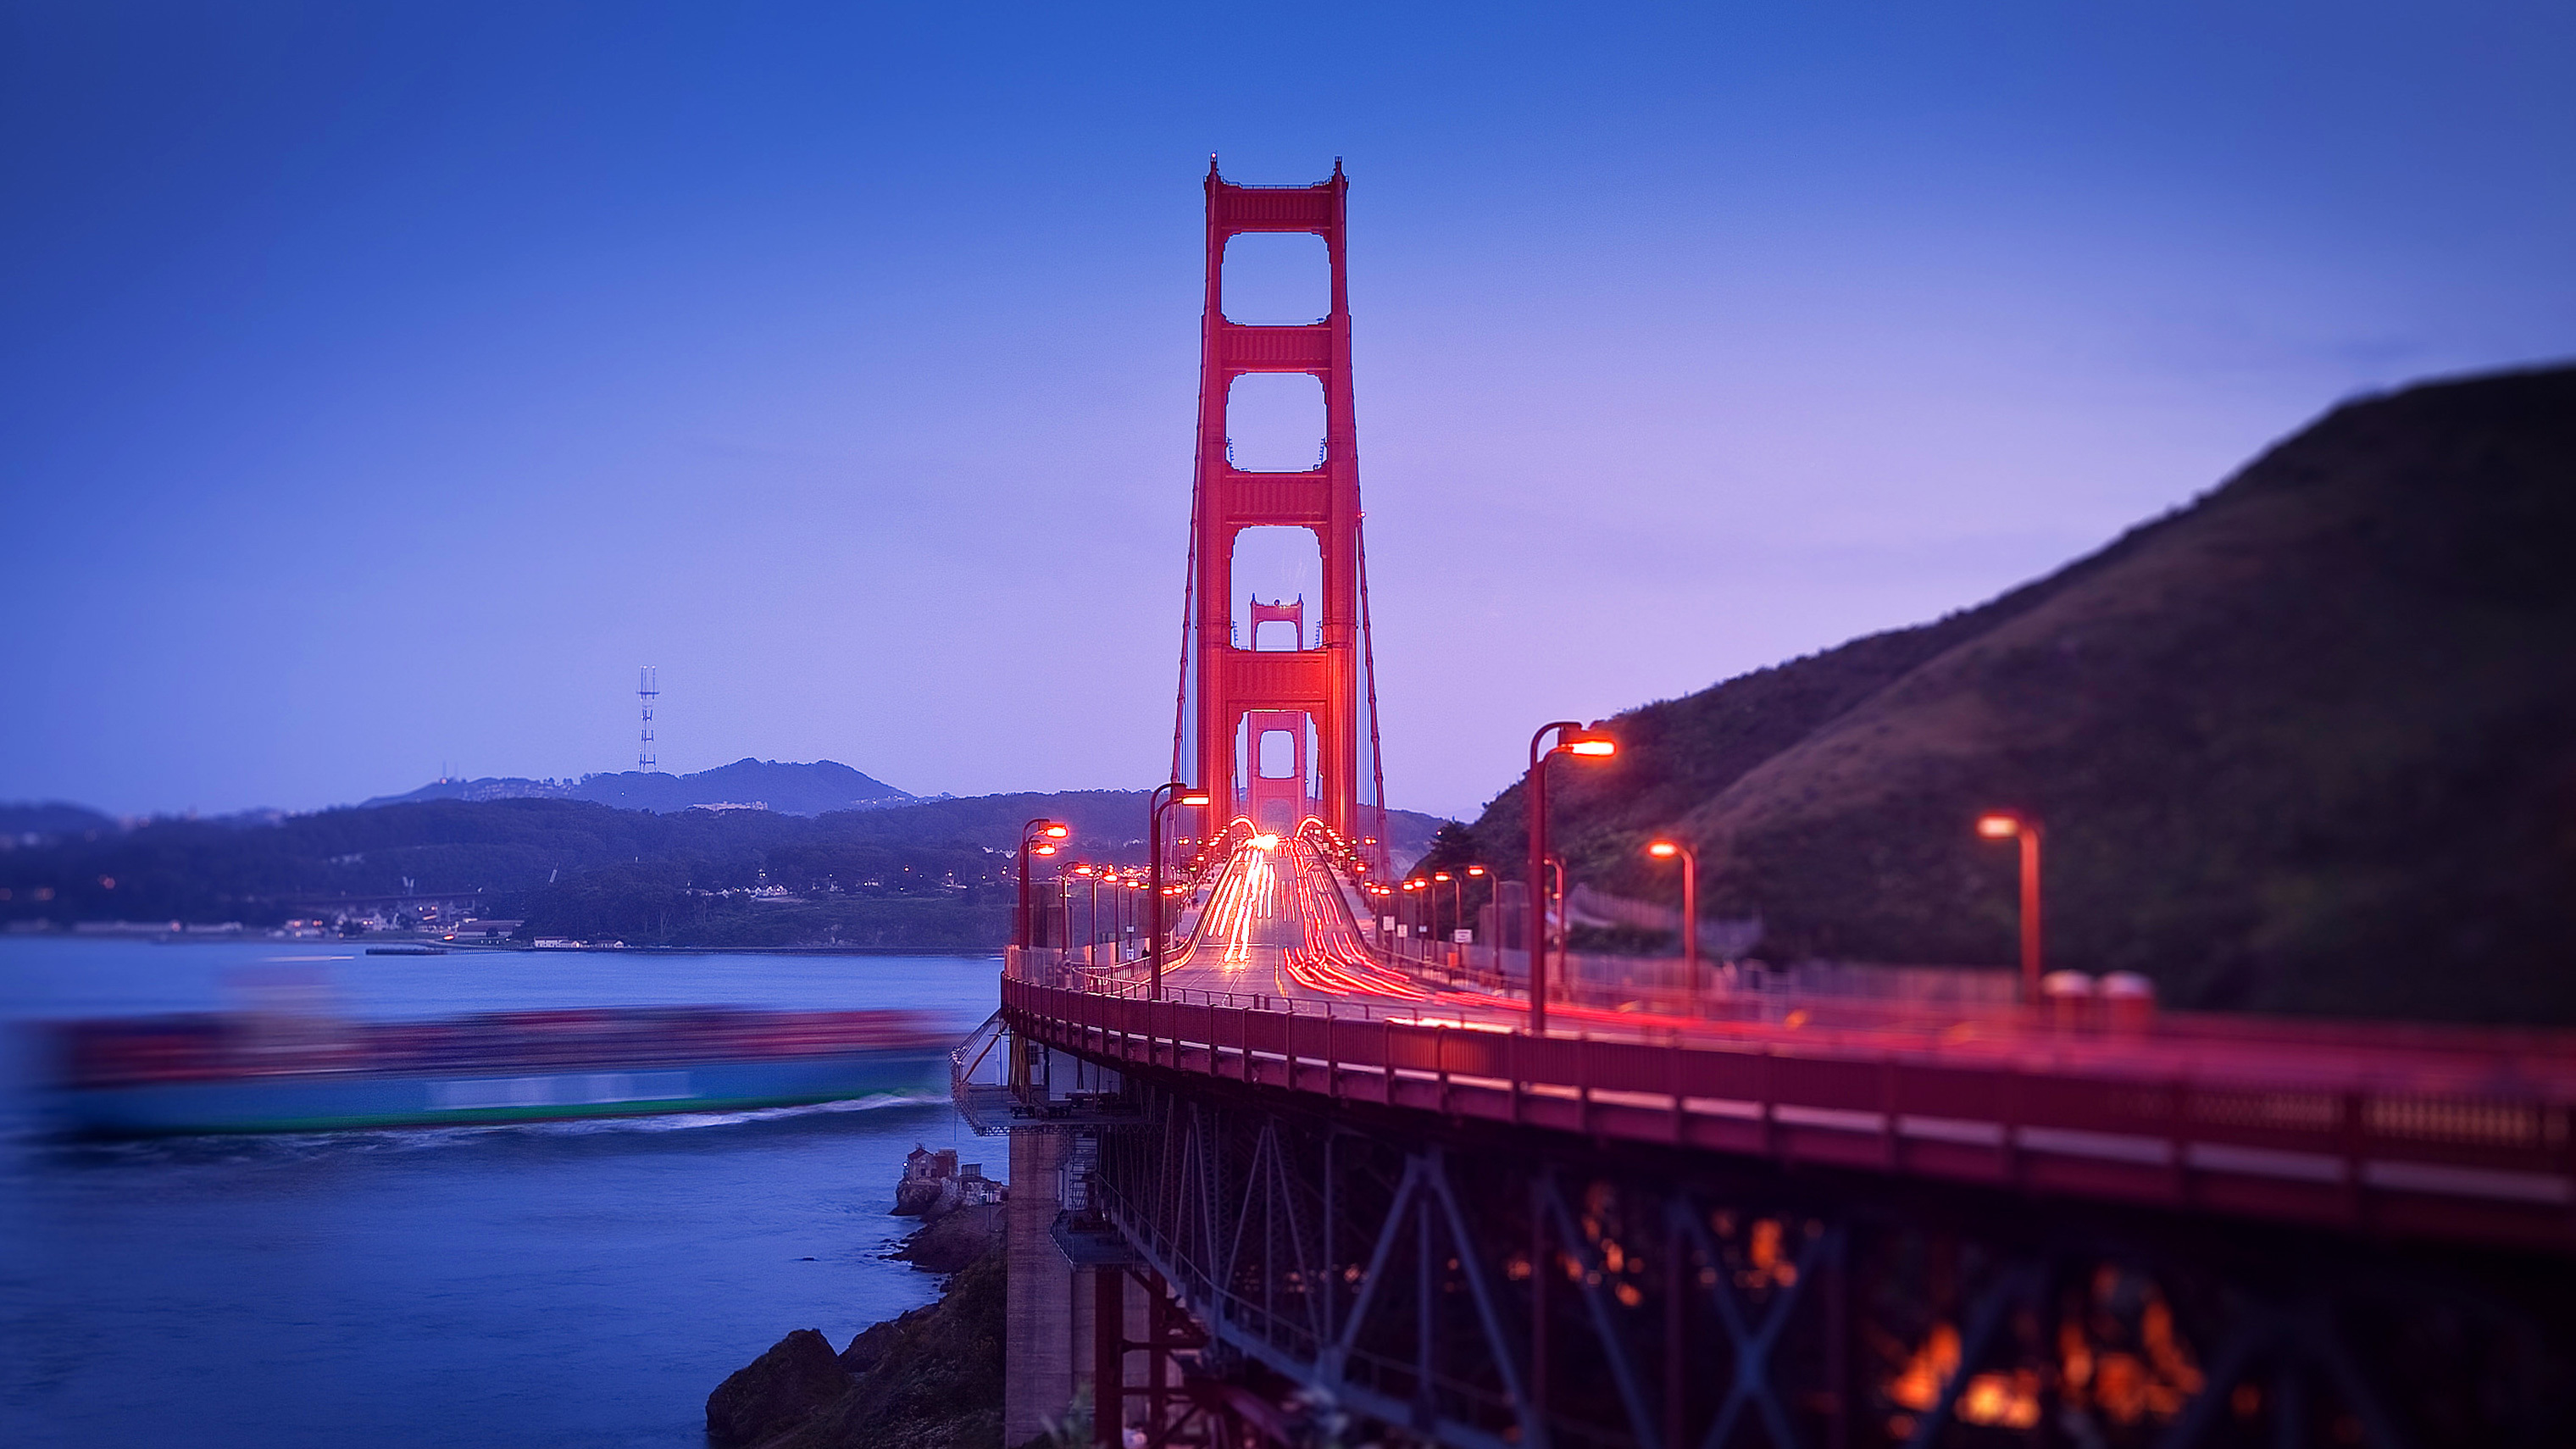 Golden Gate Hd Wallpaper Background Image 3040x1710 Id 352570 Wallpaper Abyss